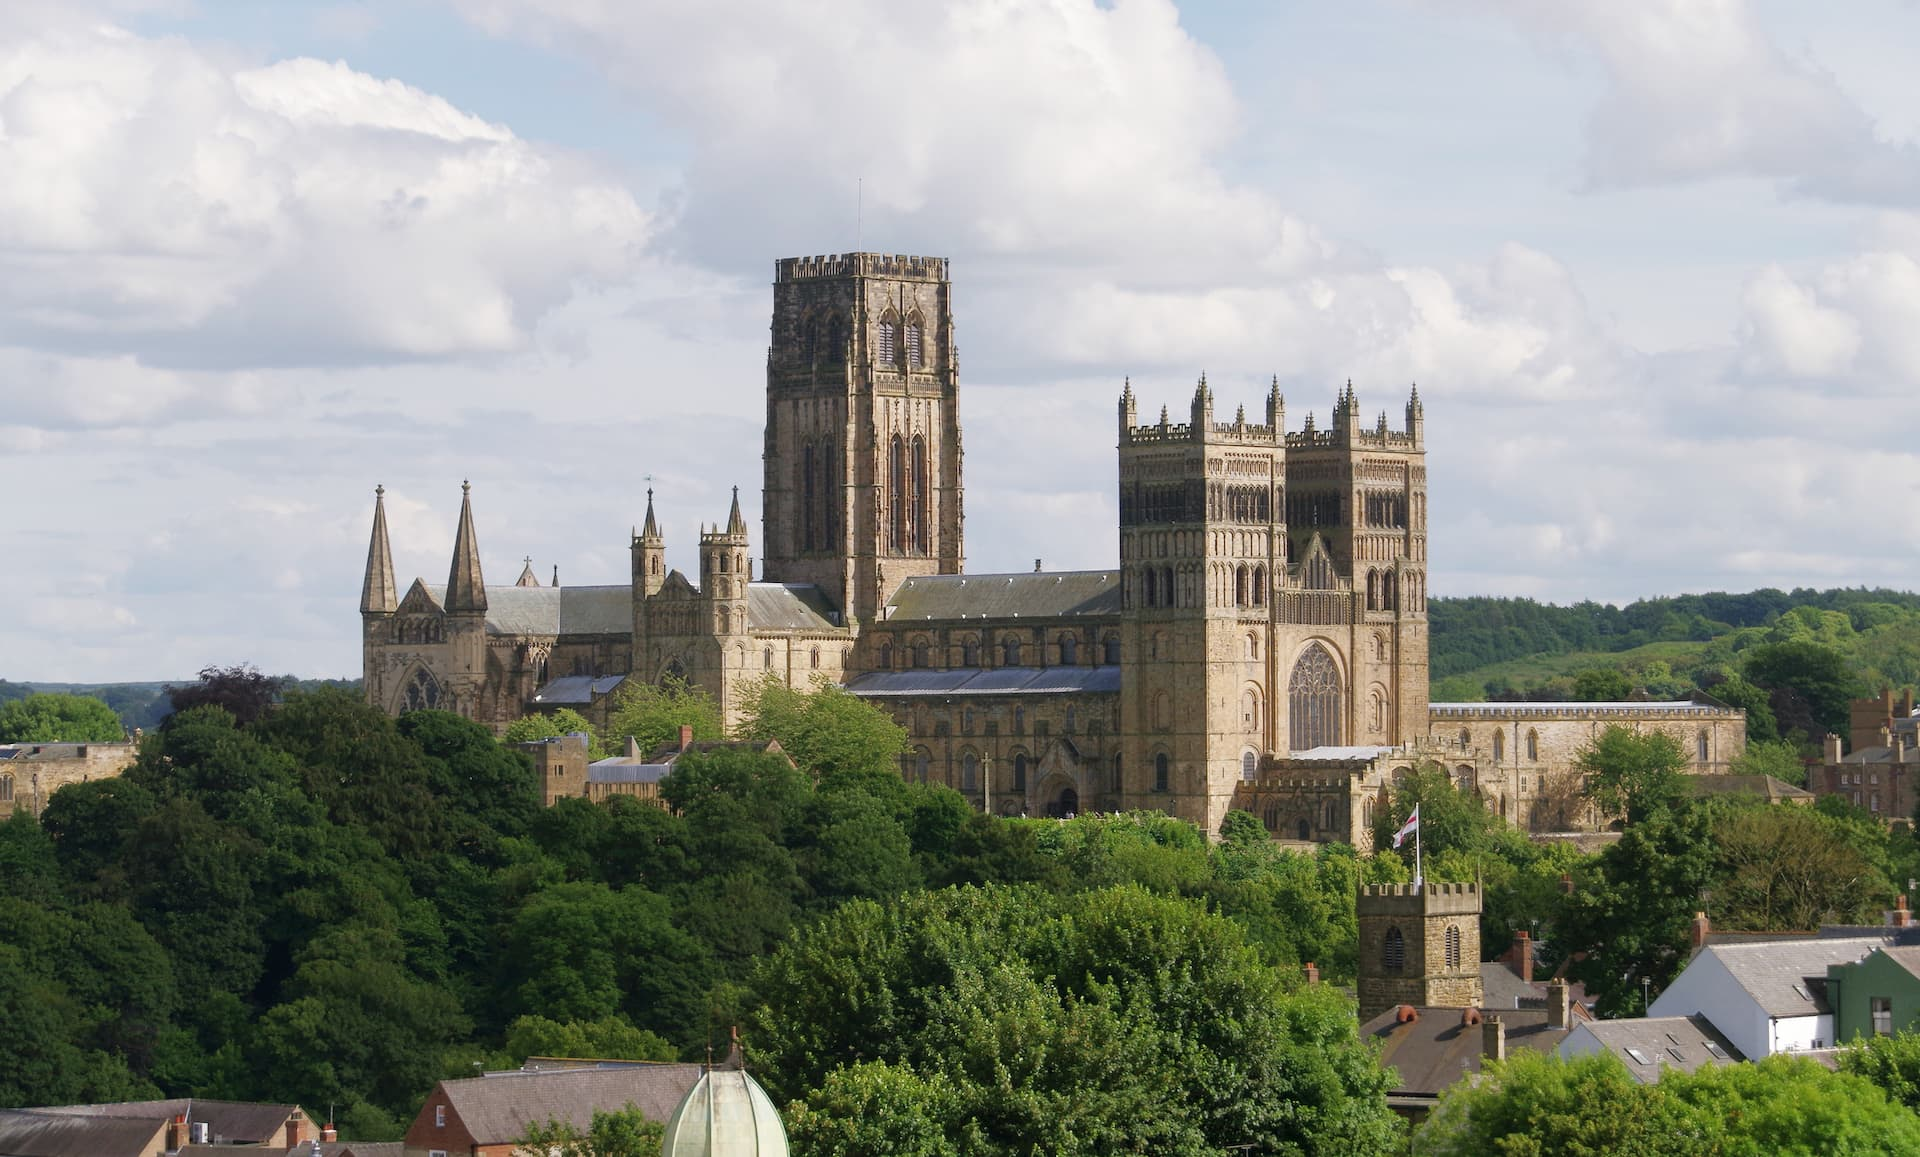 Durham Cathedral – Philosopher's Stone, the Chamber of Secrets and the Prisoner of Azkaban